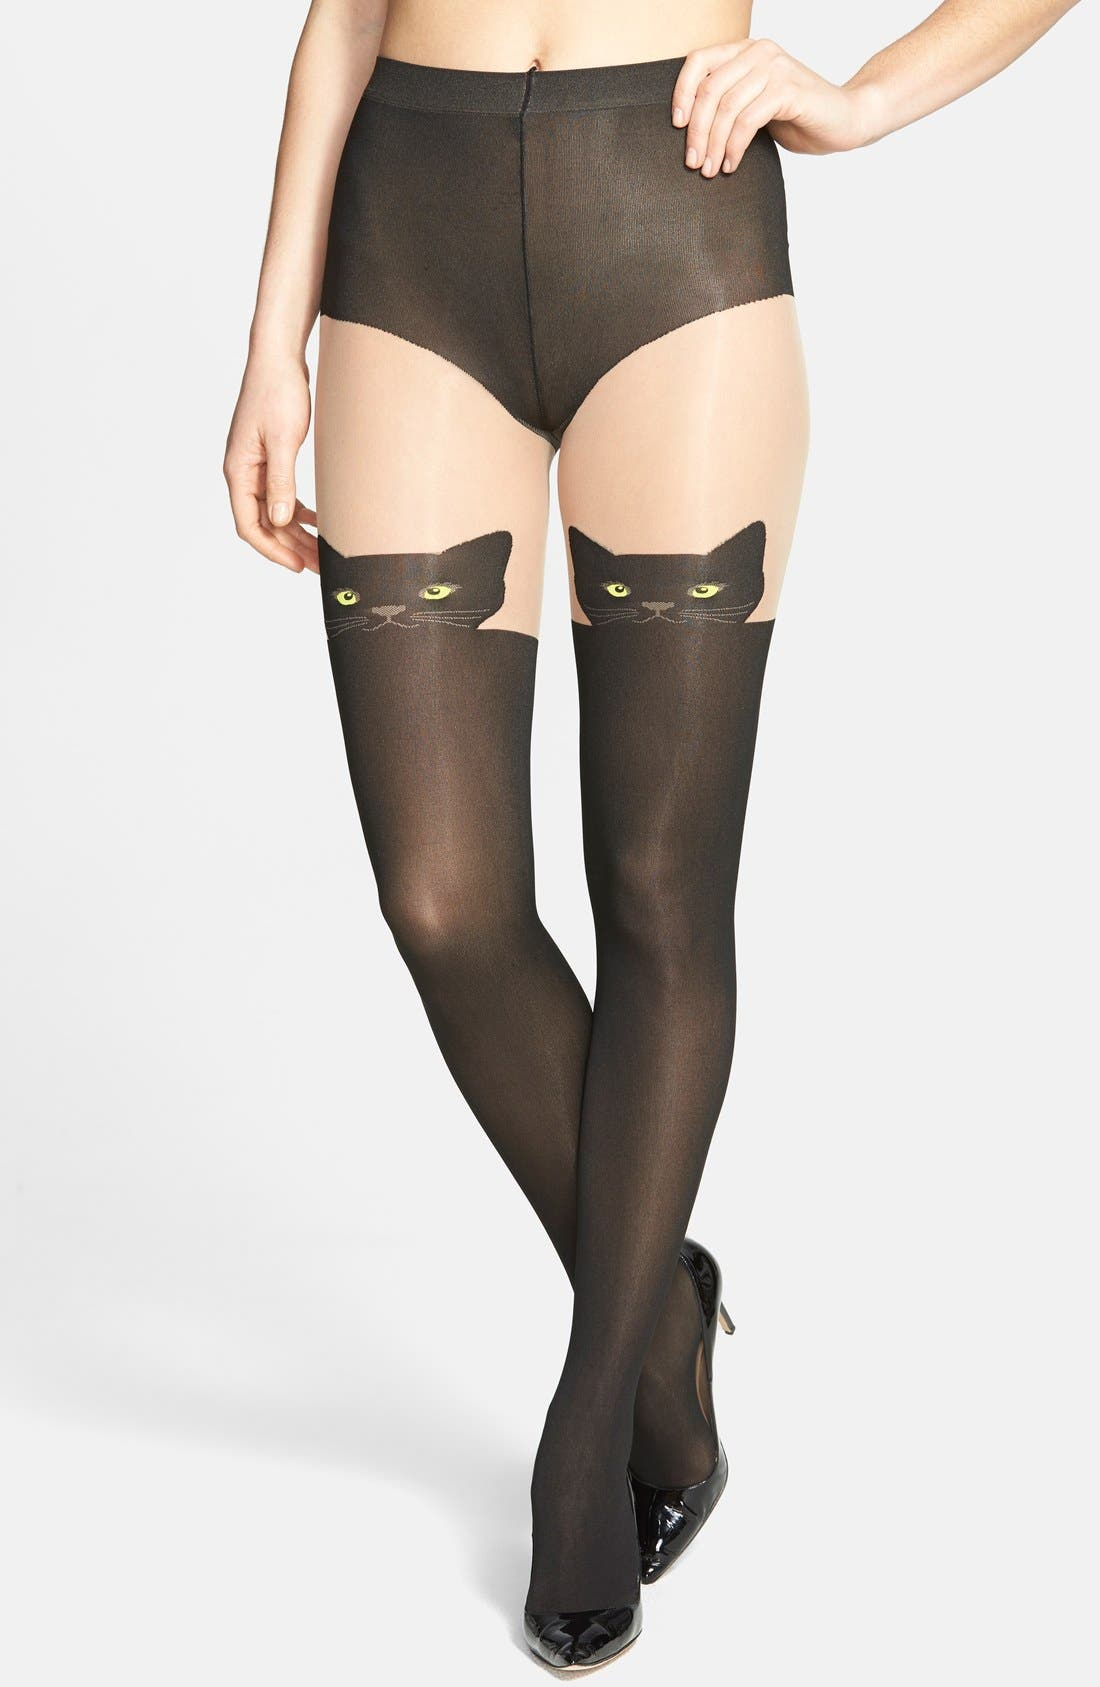 Main Image - Pretty Polly 'Cat' Tights